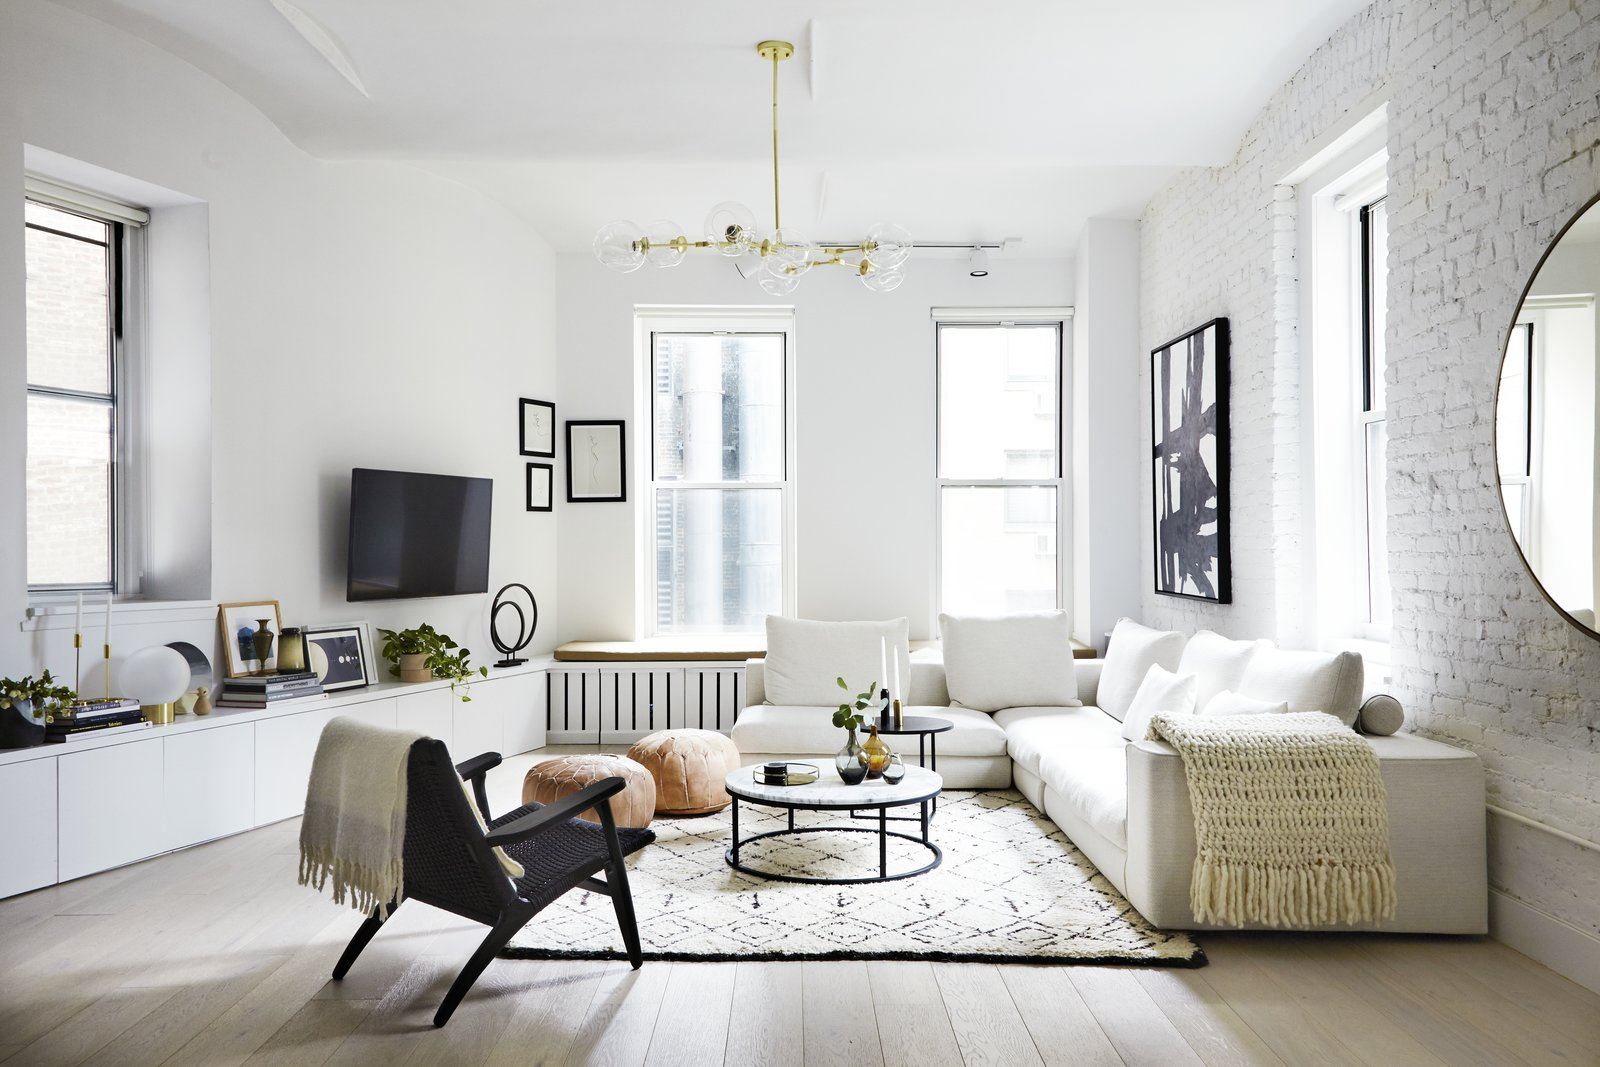 Photo 1 of 19 in Tour an Insanely Stylish NYC Loft With Major Scandinavian Vibes